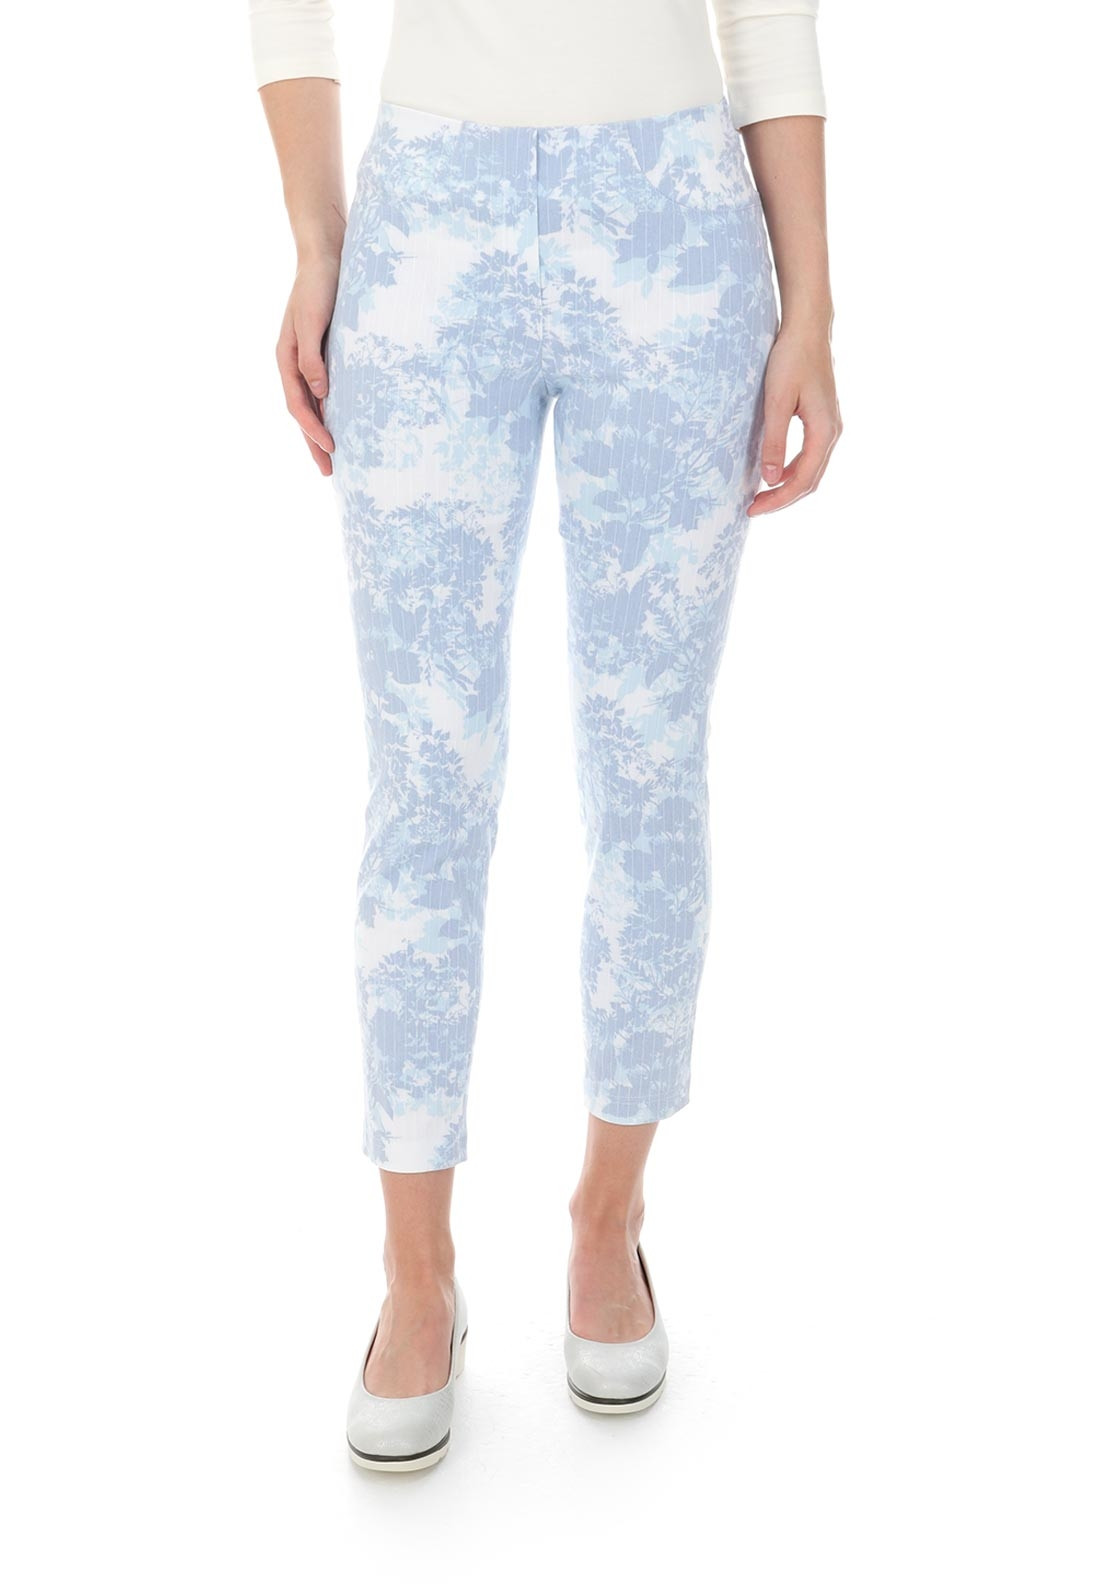 Robell Bella 09 Floral Print Cropped Jeggings, Blue and White